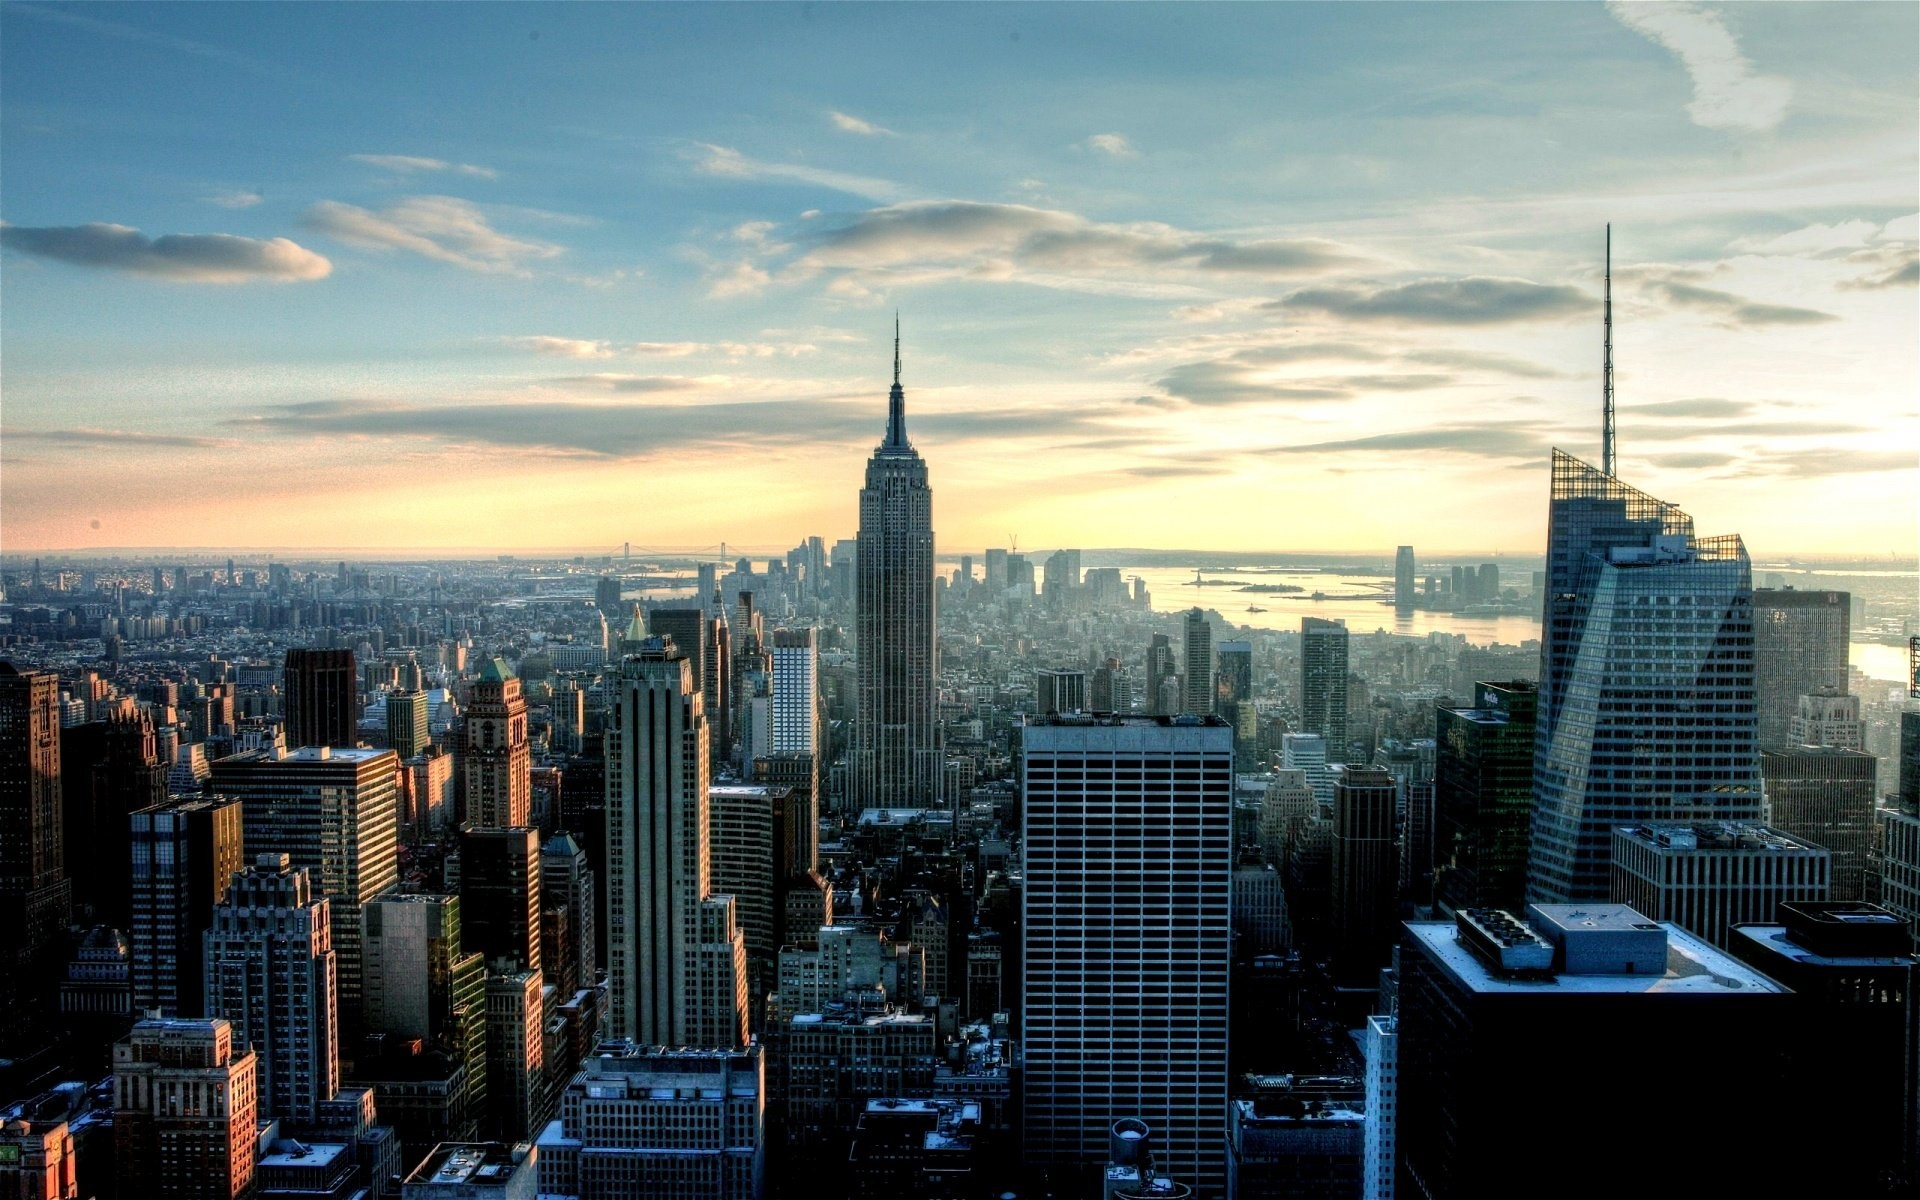 New York City Skyline Wallpapers | wallpaper, wallpaper hd, background .